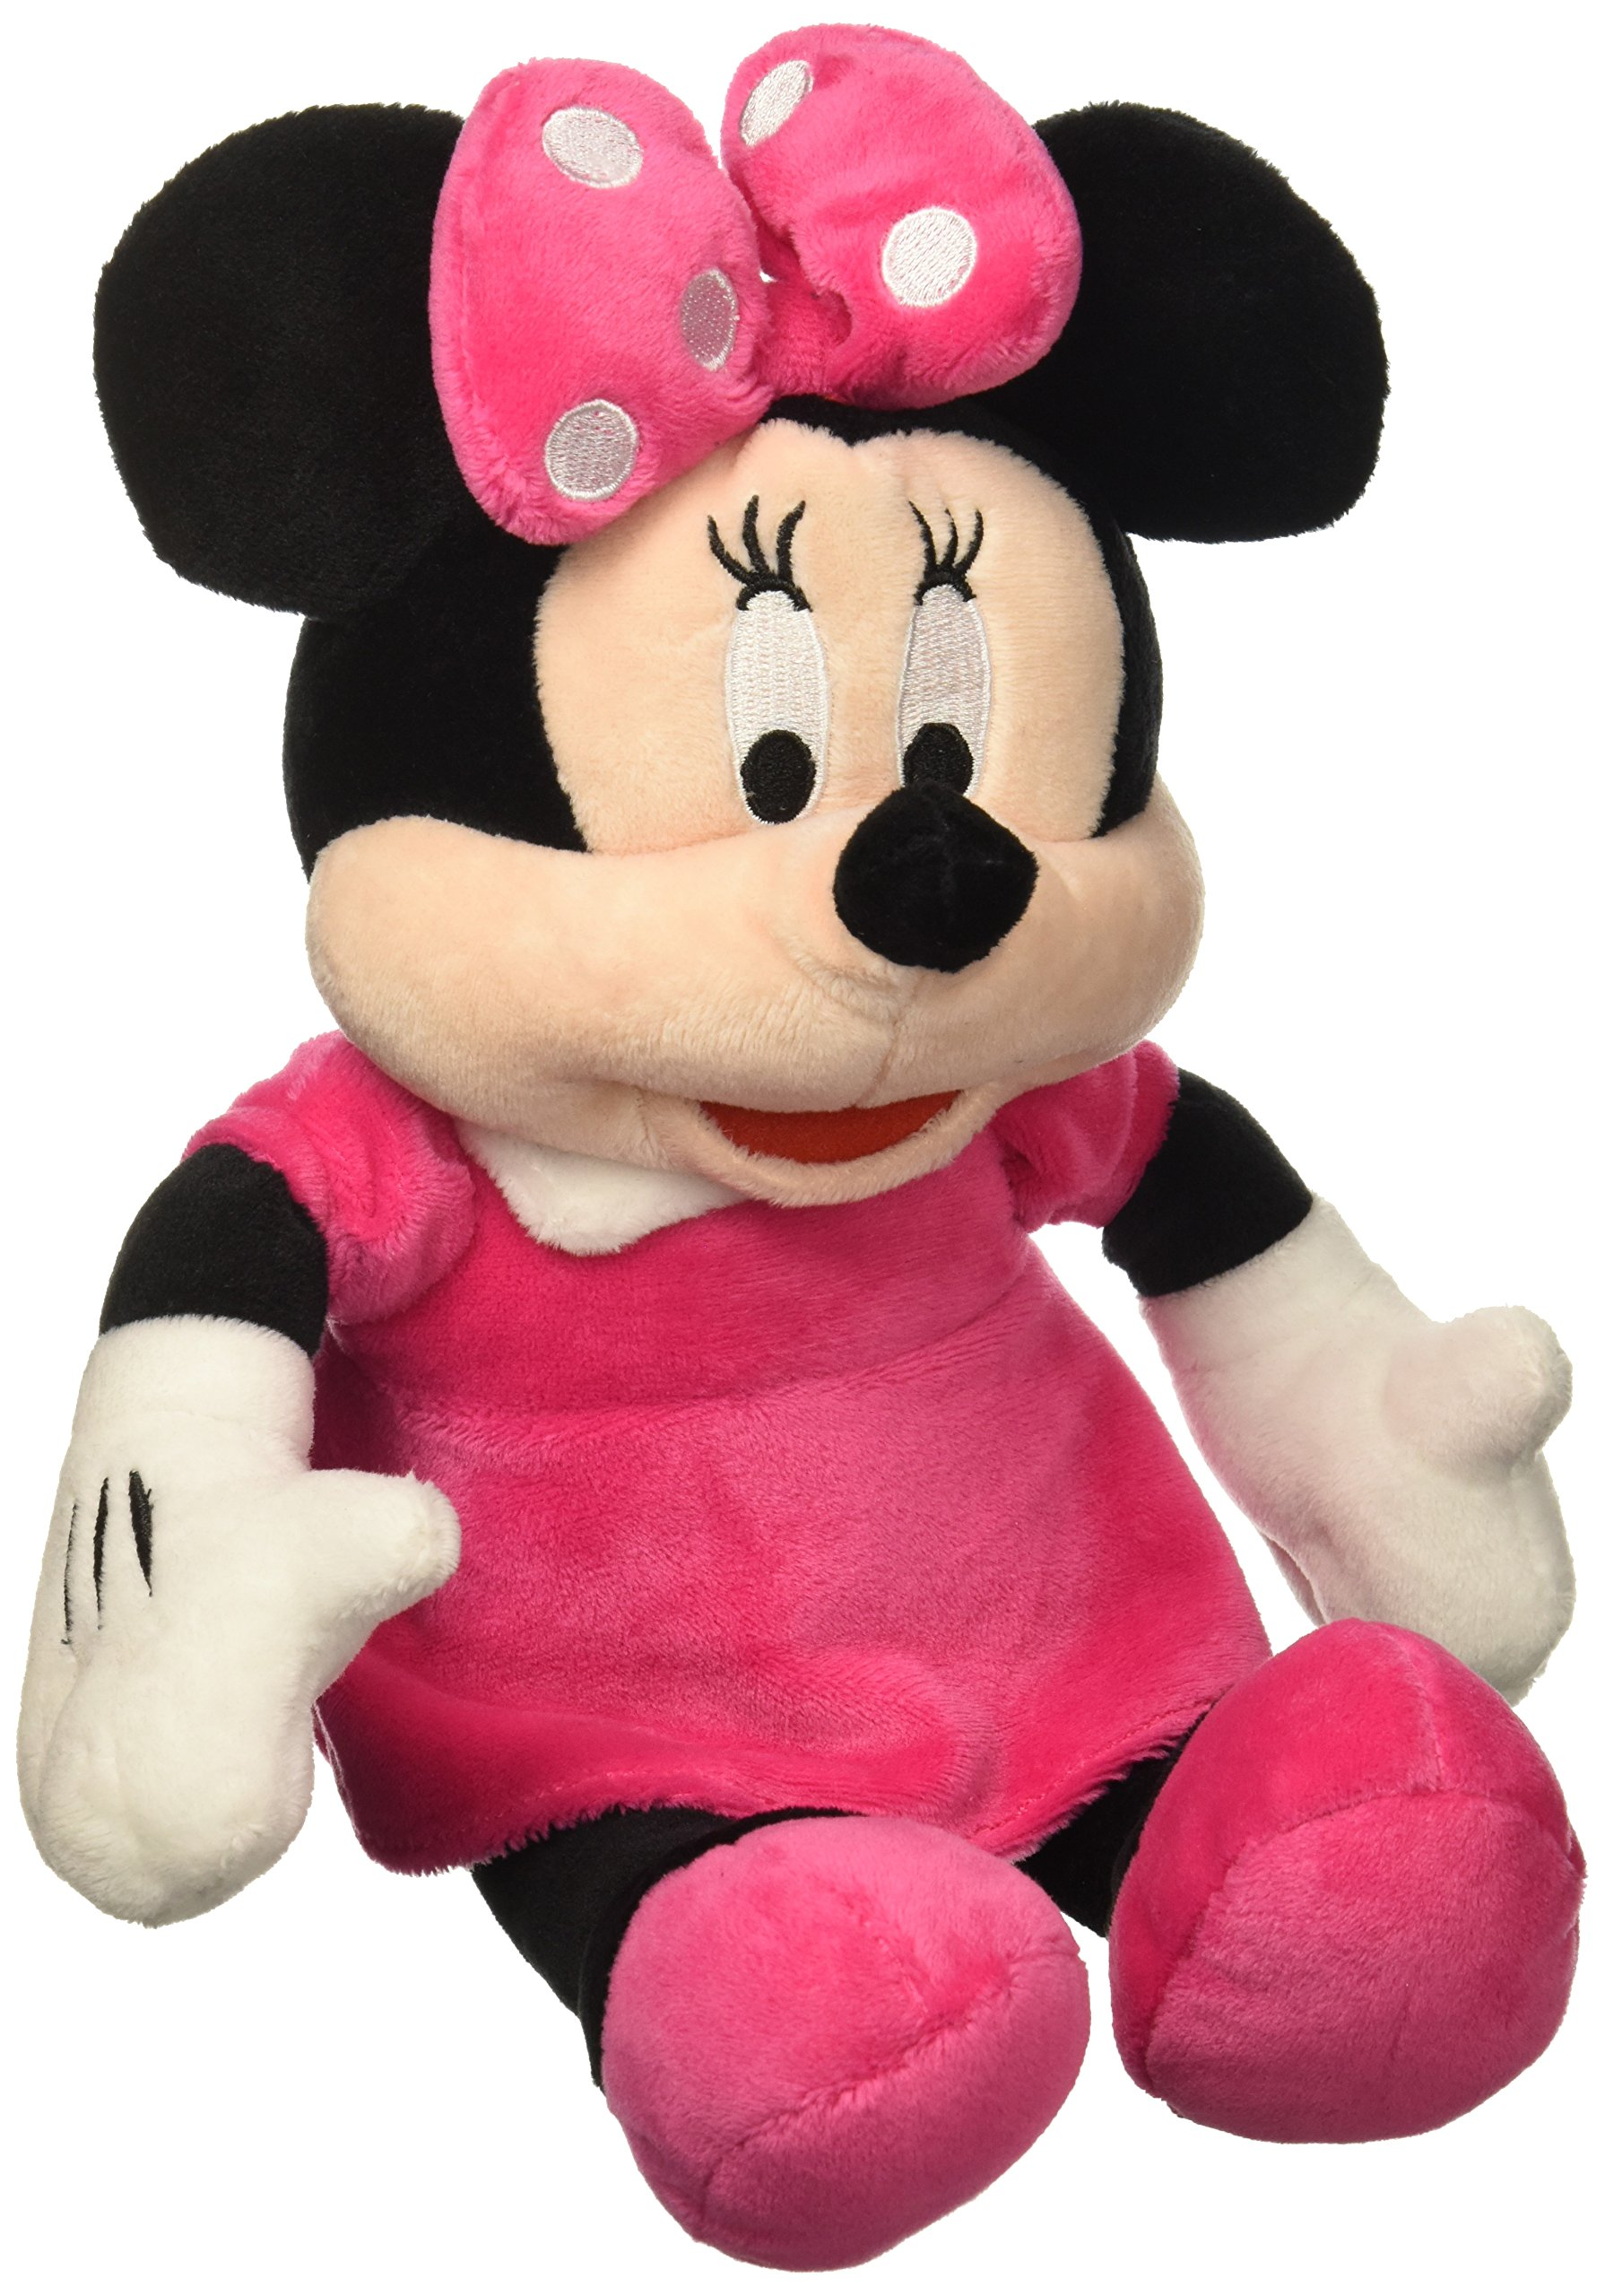 Disney Minnie Mouse Plush Pink Coin Bank